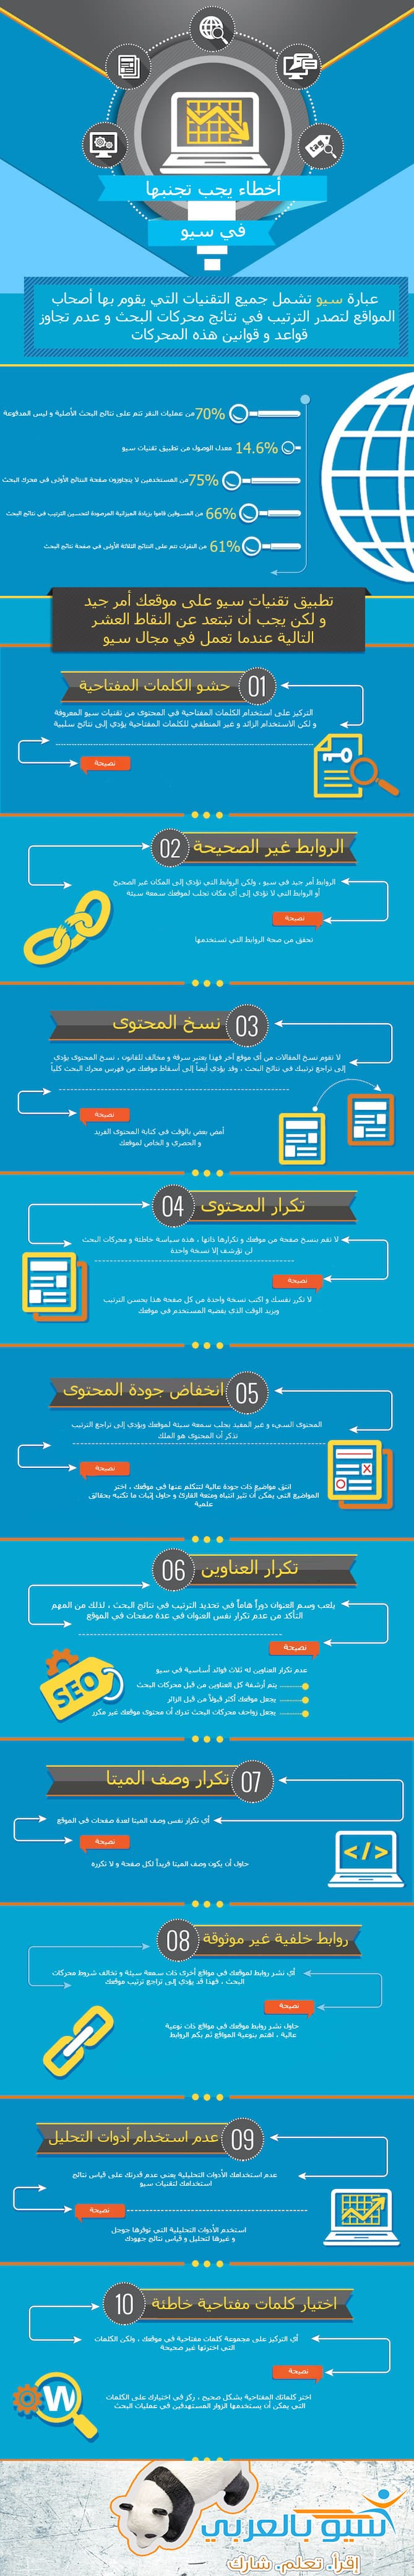 seo-mistakes-to-avoid-infographic copy